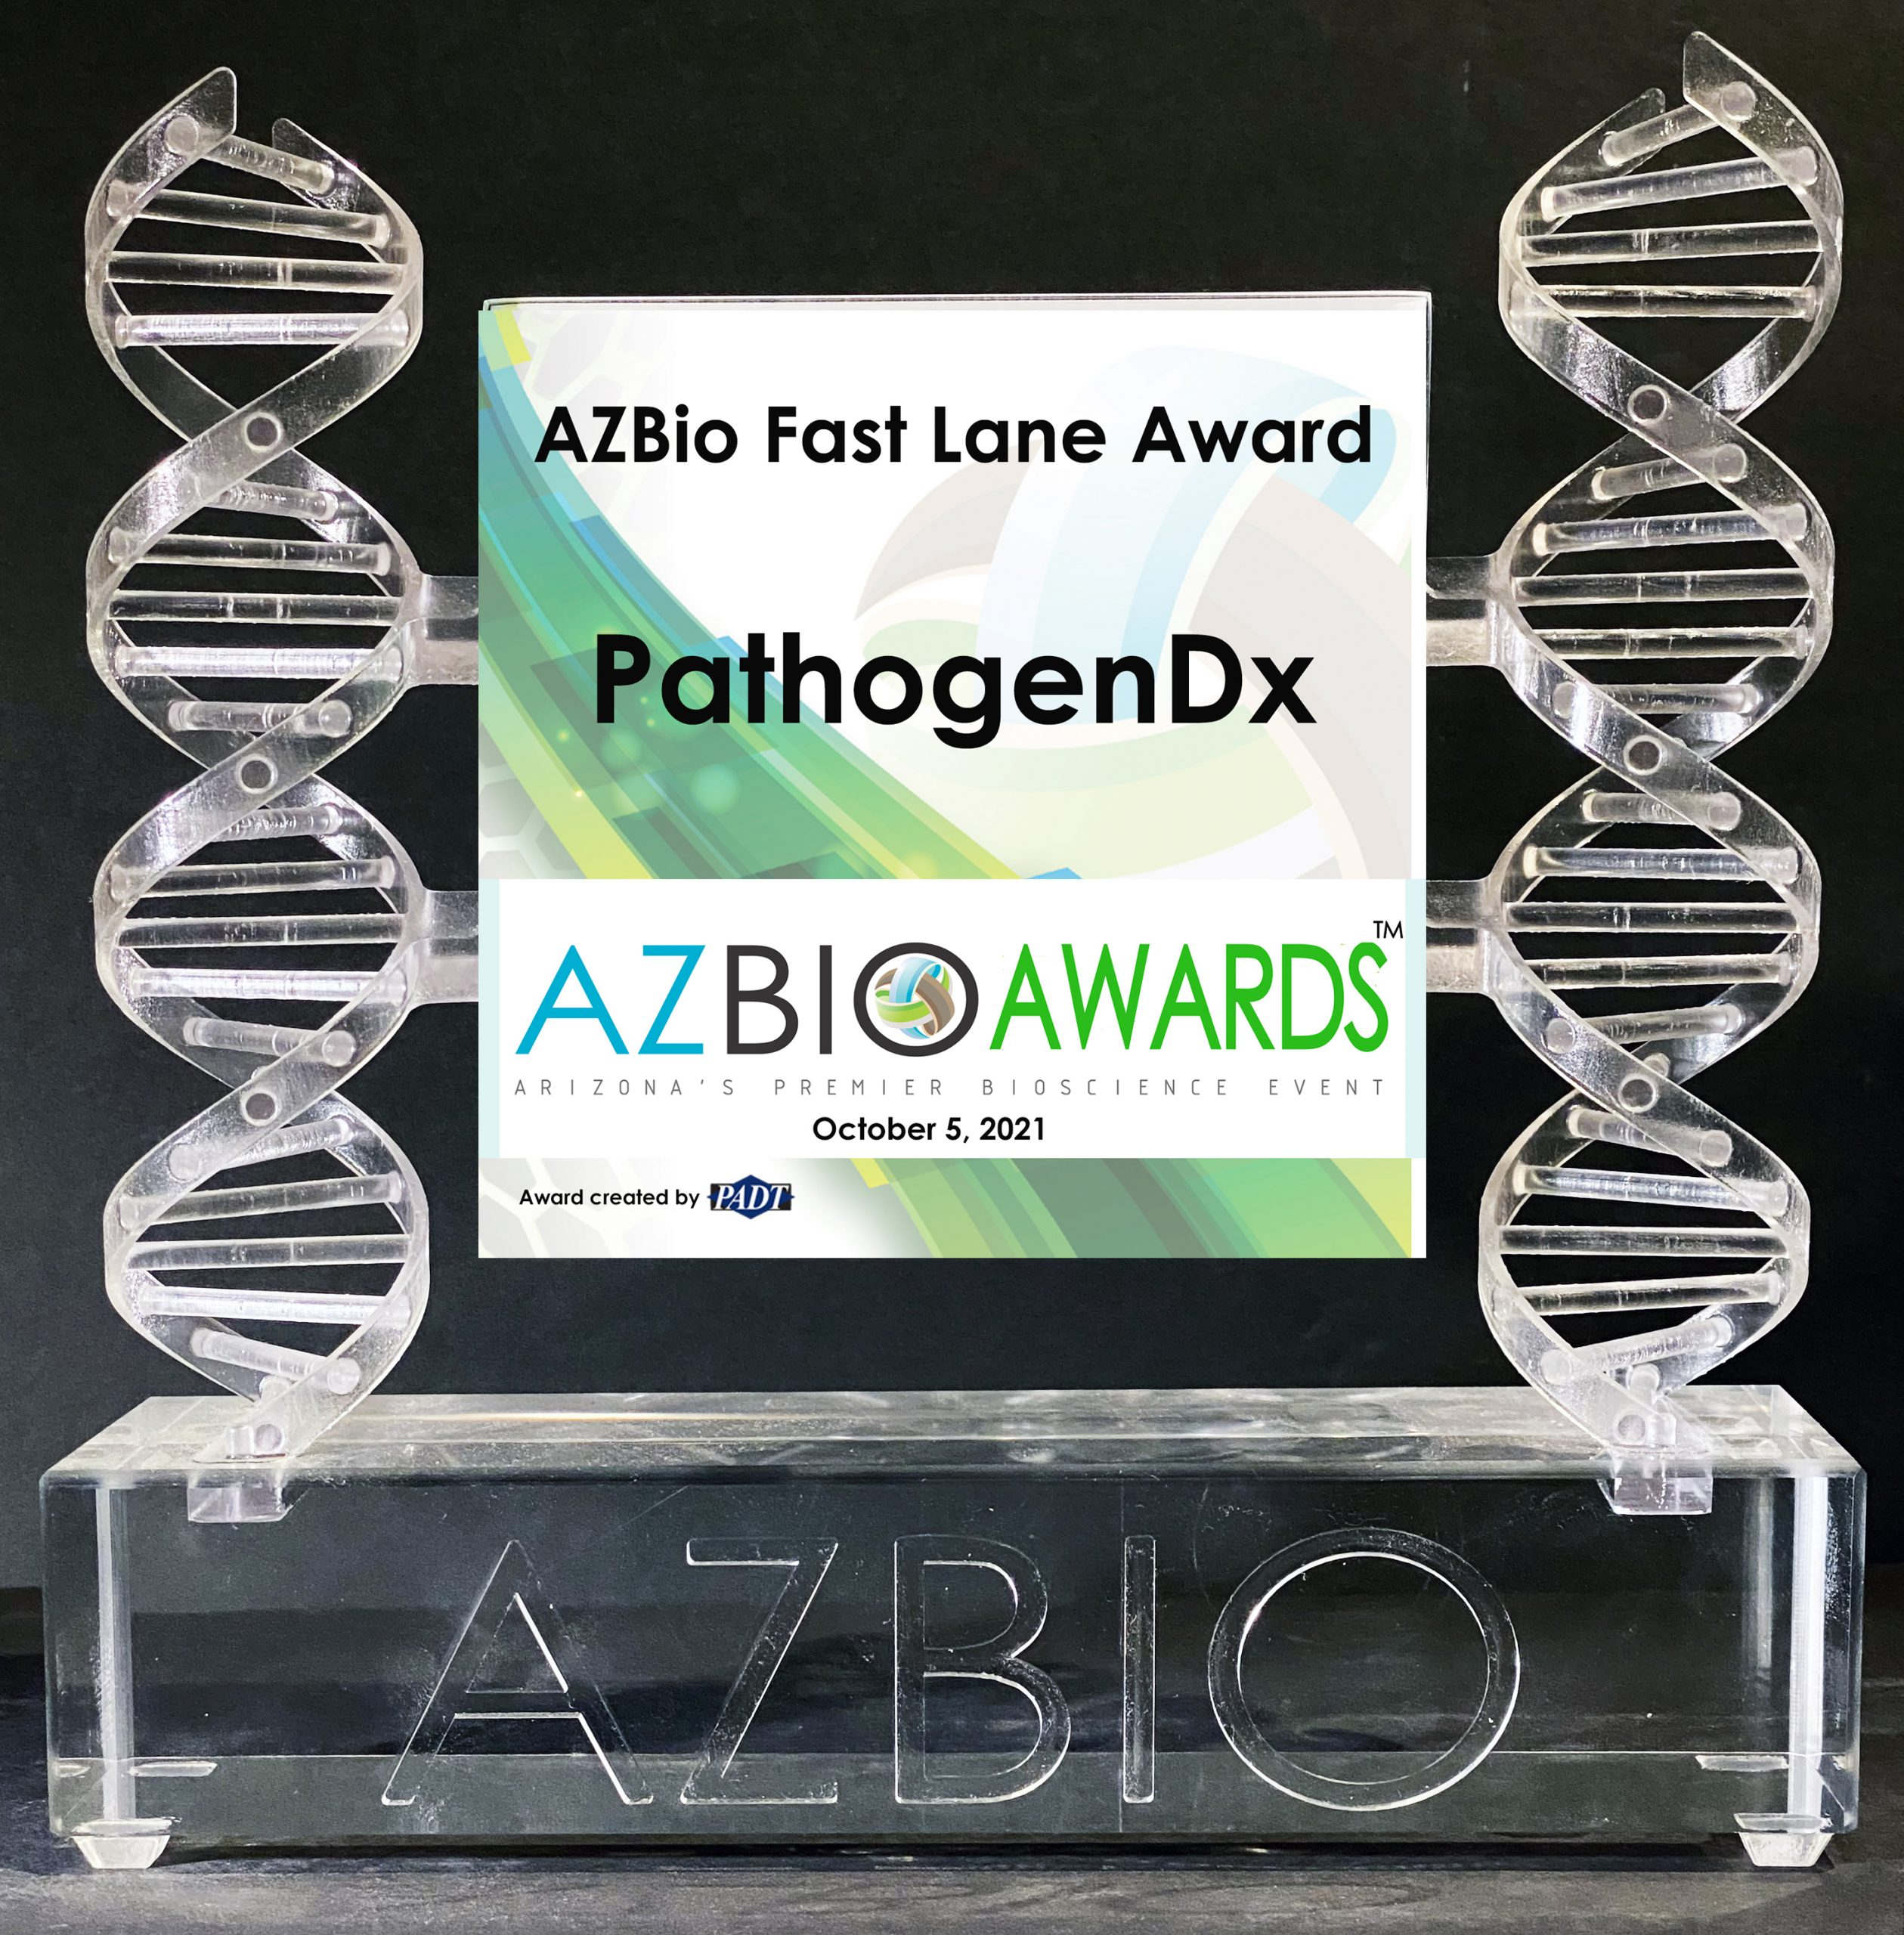 PathogenDx is being honored with a 2021 AZBio Fast Lane Award.